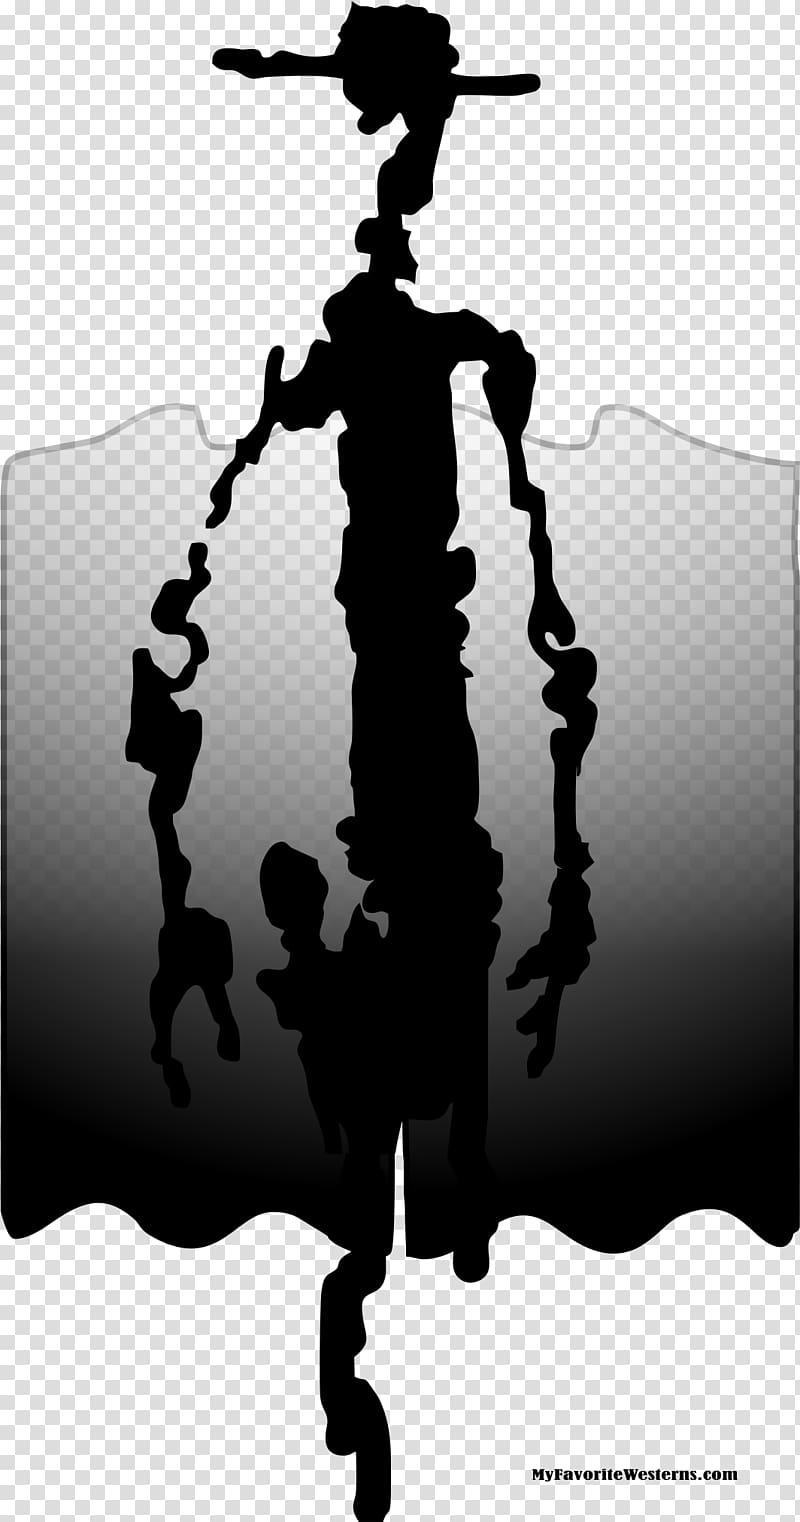 Western xoxo clipart png jpg black and white Zorro Western Silhouette Clive Barker\'s Jericho, others ... jpg black and white